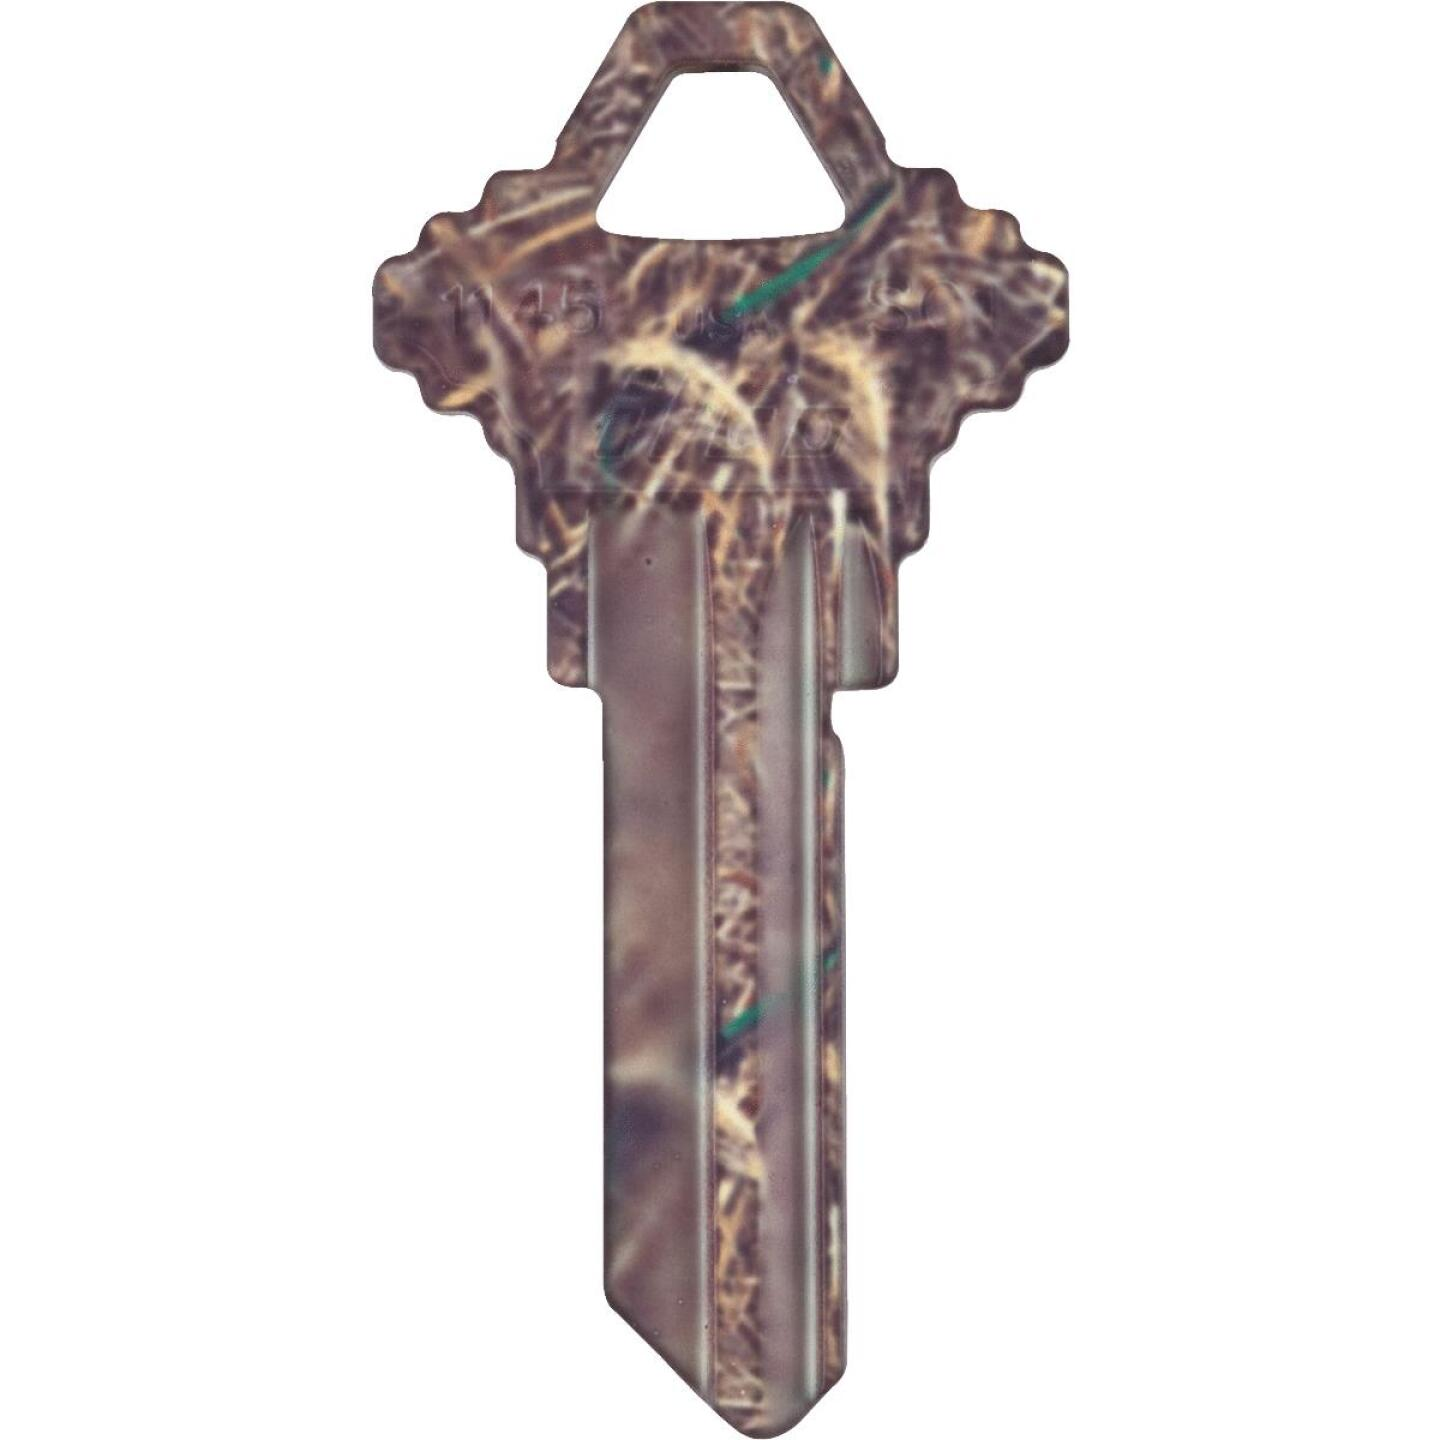 ILCO Schlage Realtree Camo Design Decorative Key, SC1  Image 1